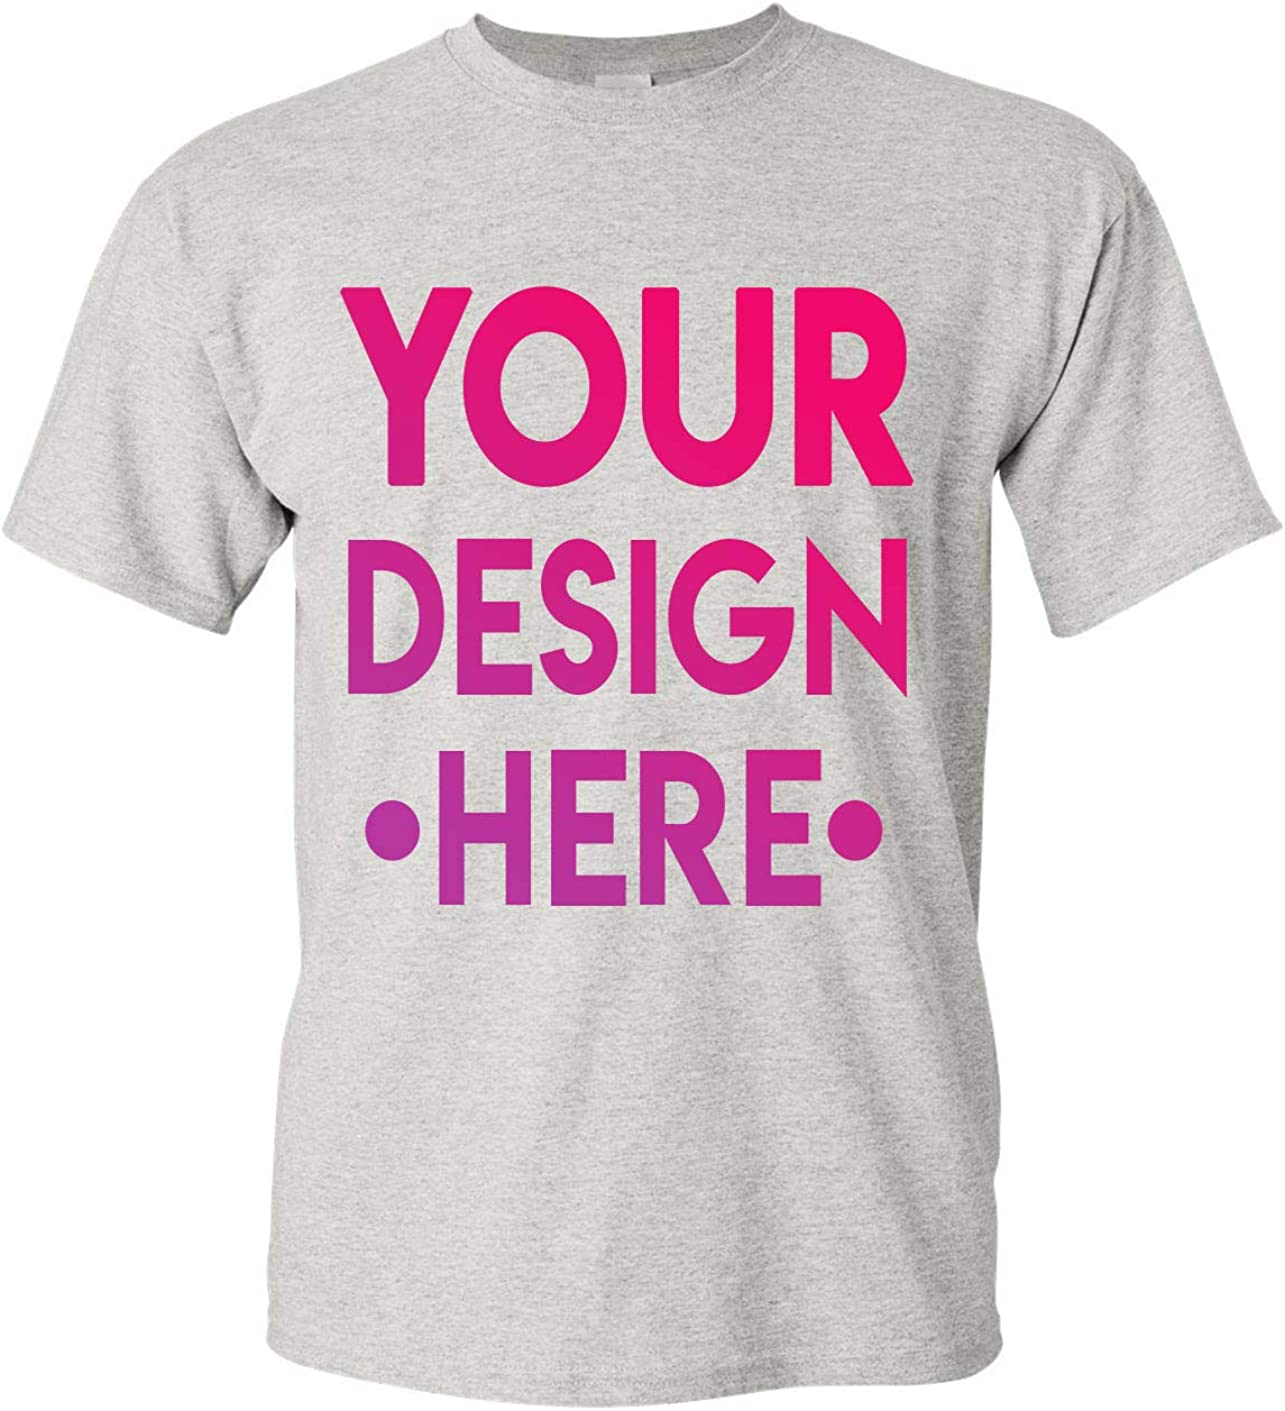 Amazon Com Design Your Own Shirt Customized T Shirt Add Your Picture Photo Text Print Clothing